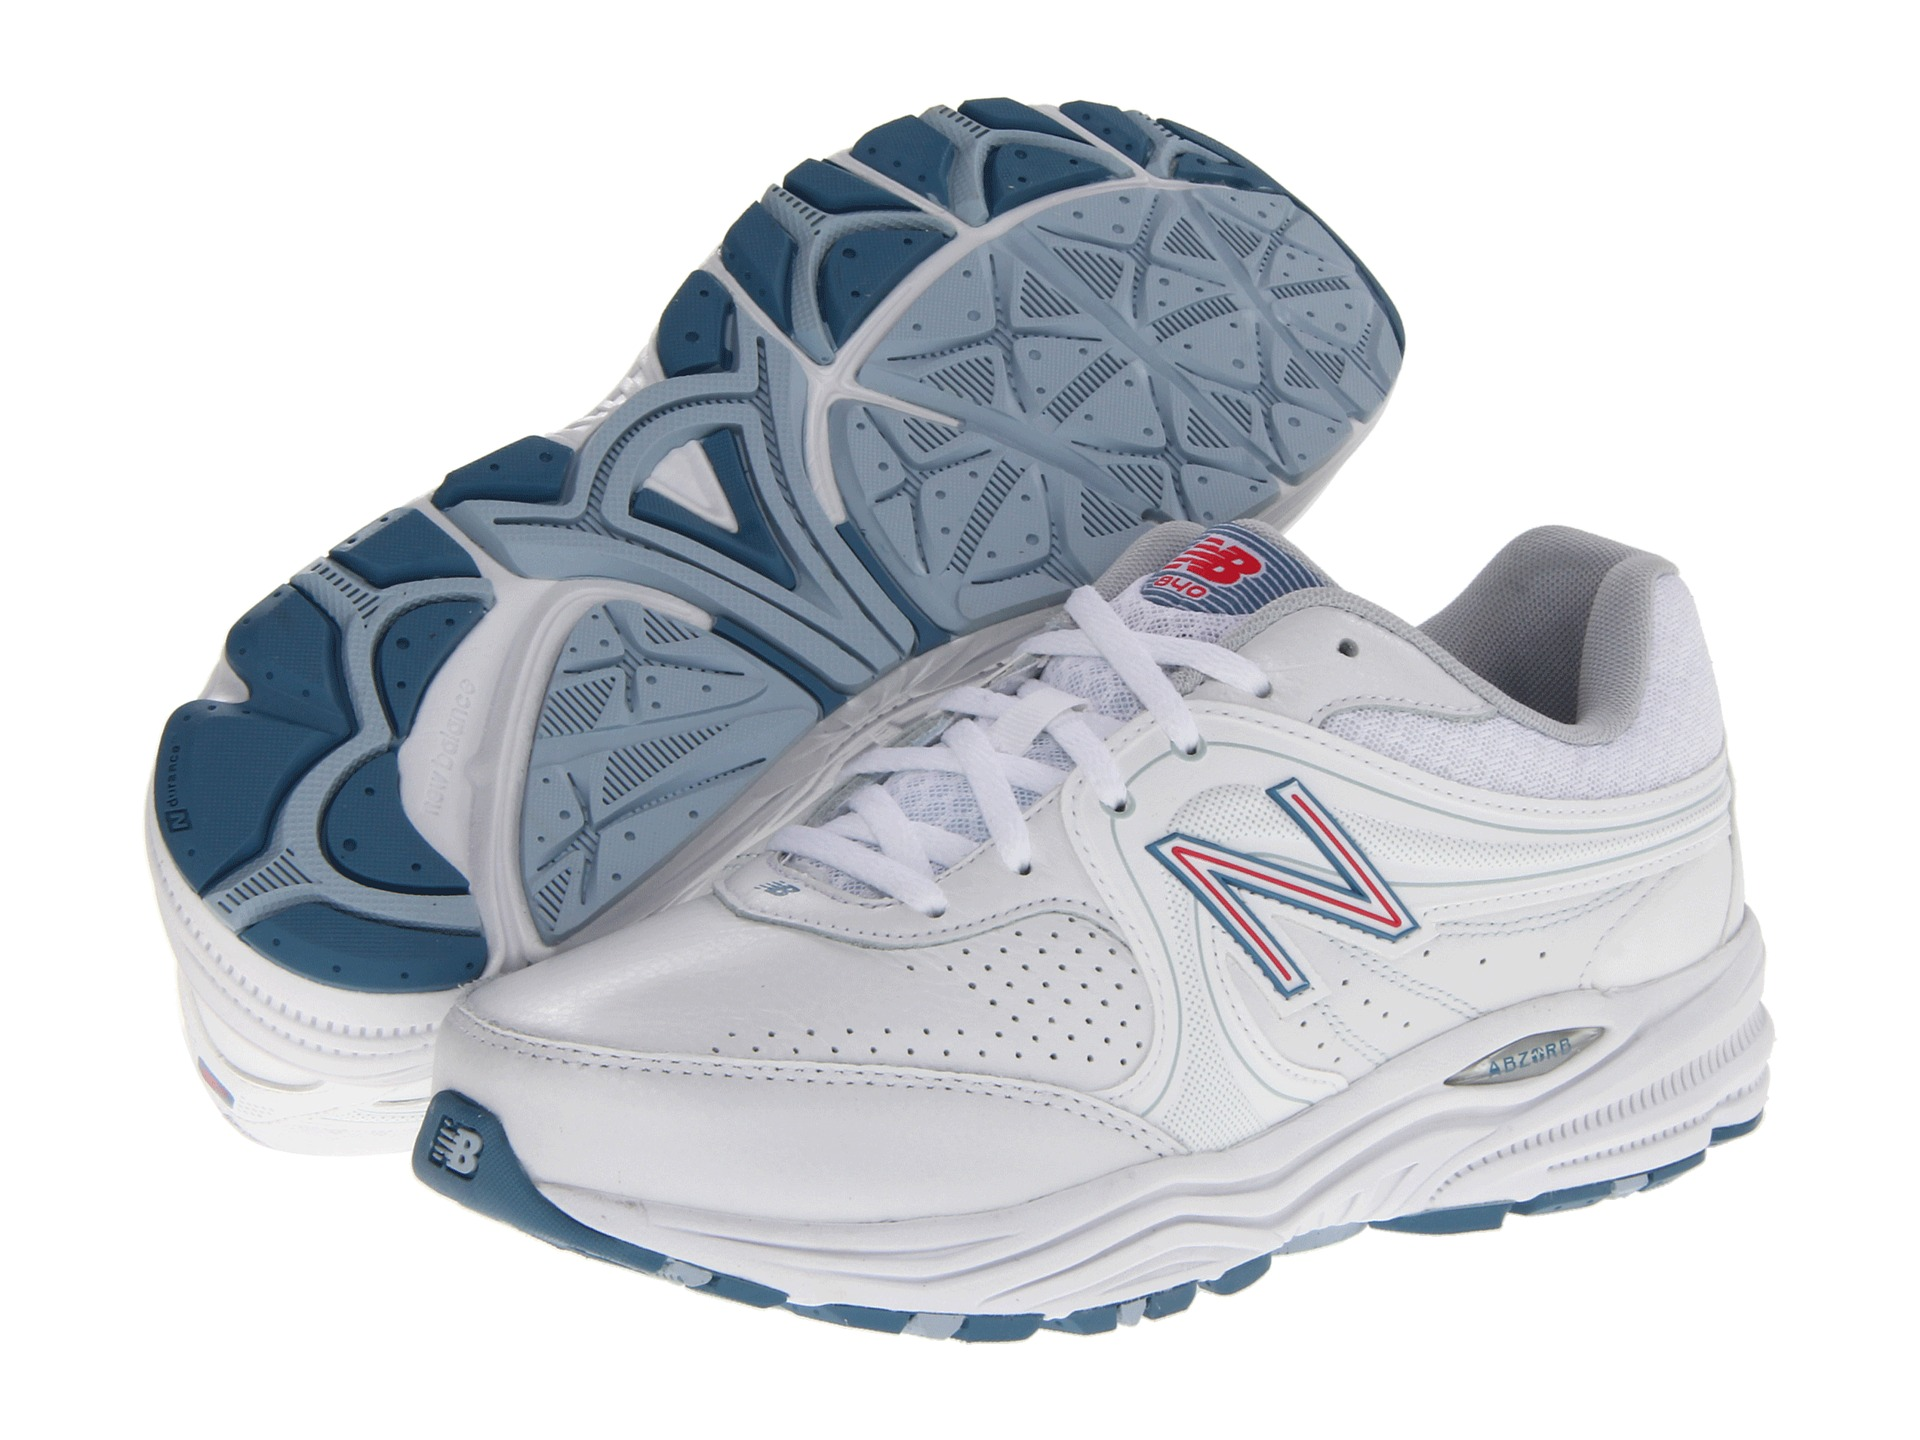 New Balance Diabetic Shoes Mw 840 Philly Diet Doctor Dr Jon